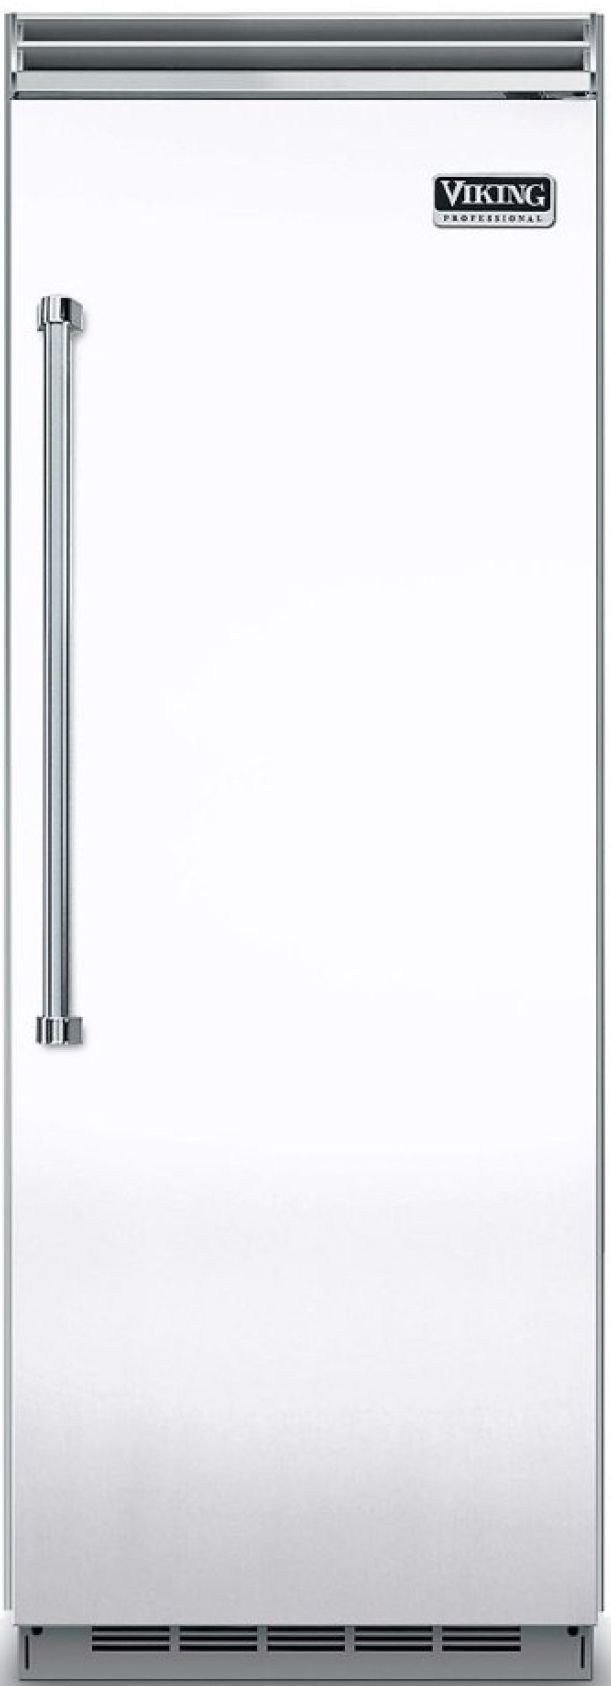 Viking® 5 Series 15.9 Cu. Ft. White Built In All Freezer-VCFB5303RWH